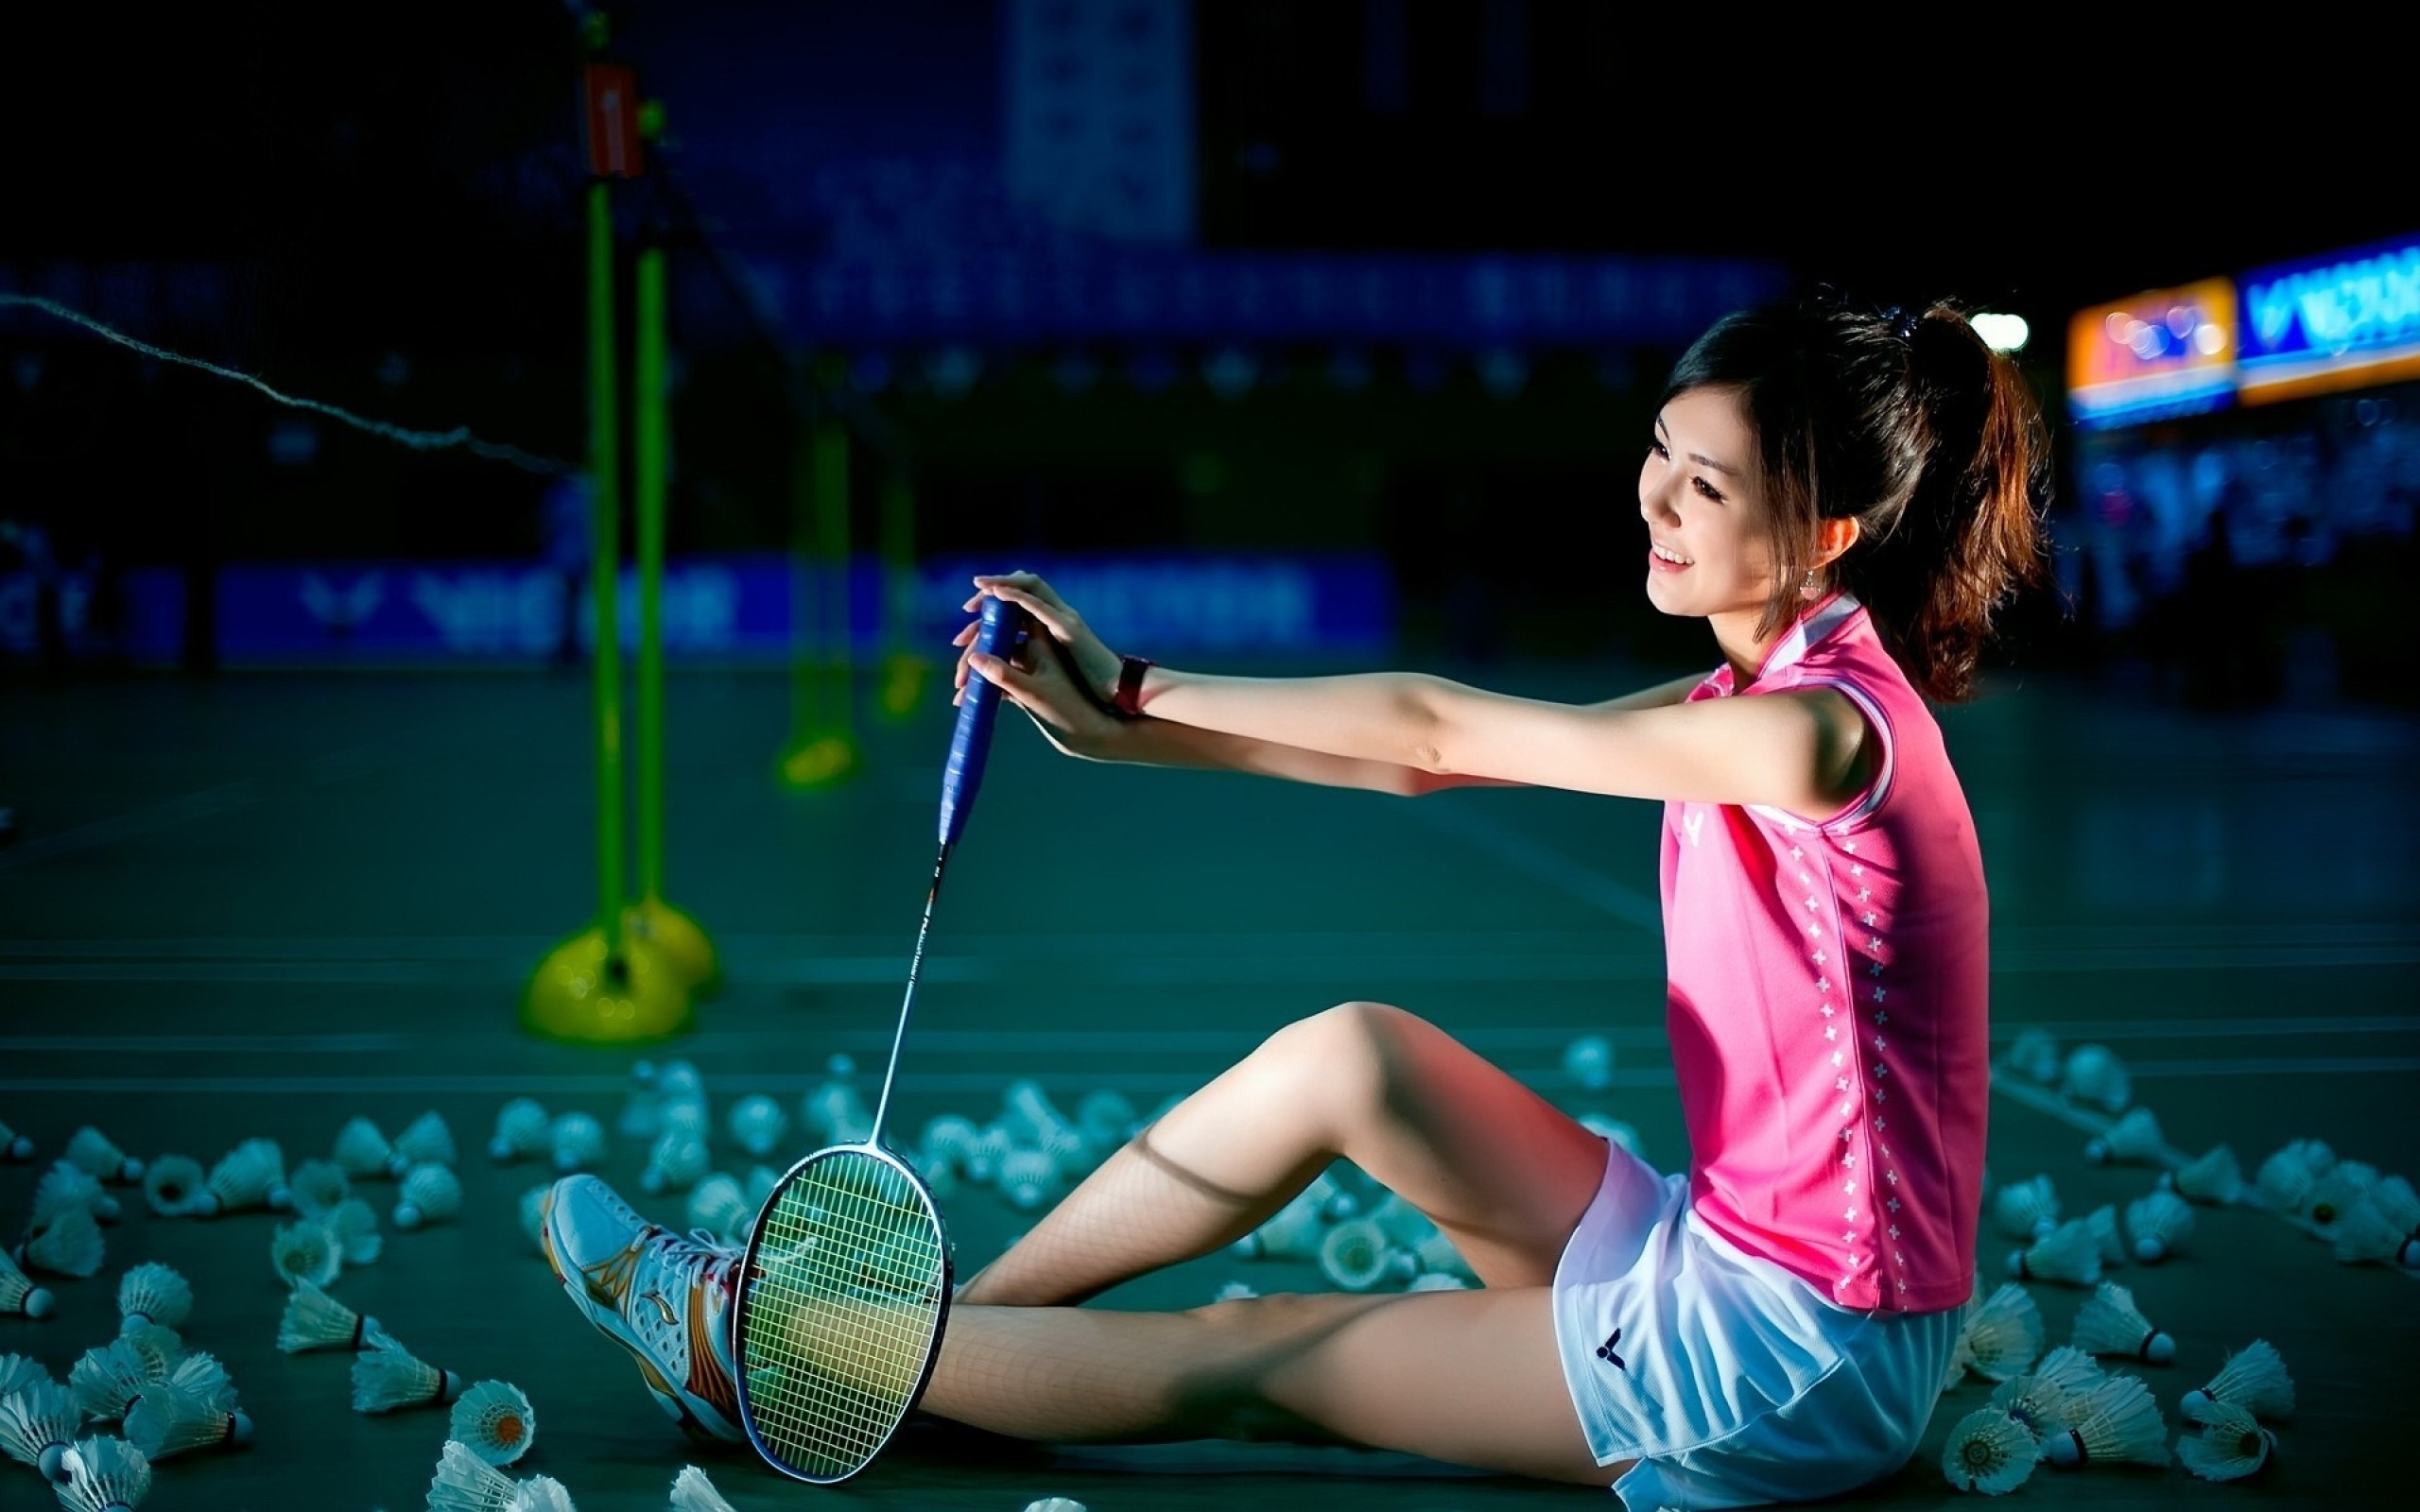 Image: Badminton, racket, shuttlecock, Chinese girl, gym